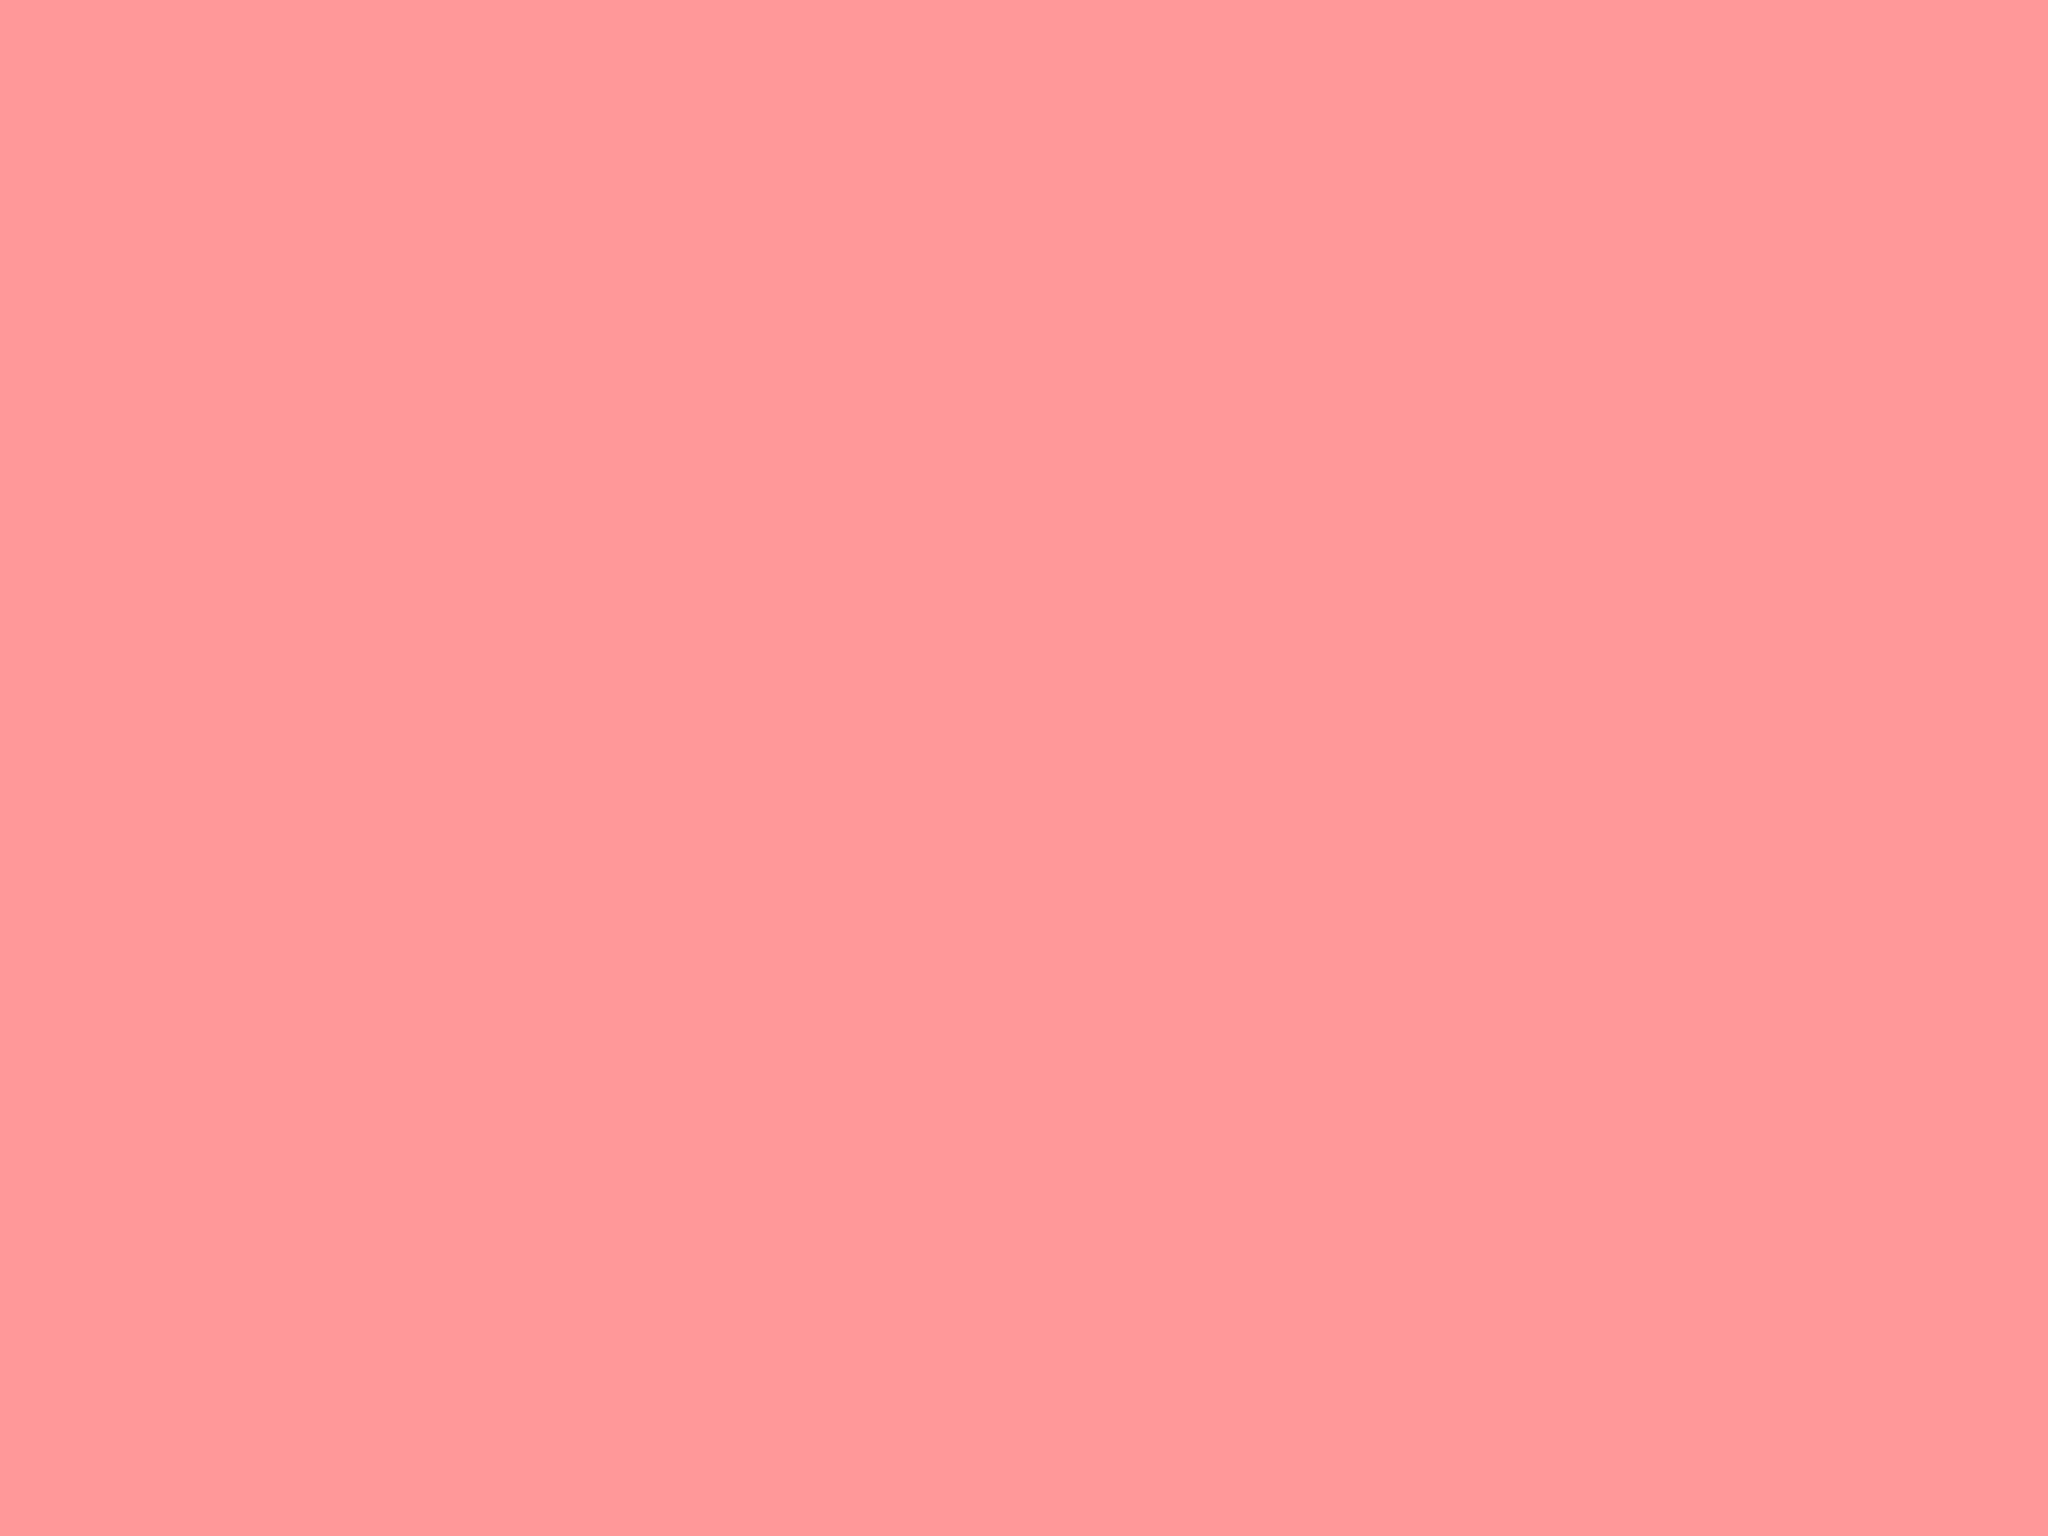 Light Pink Backgrounds ·①